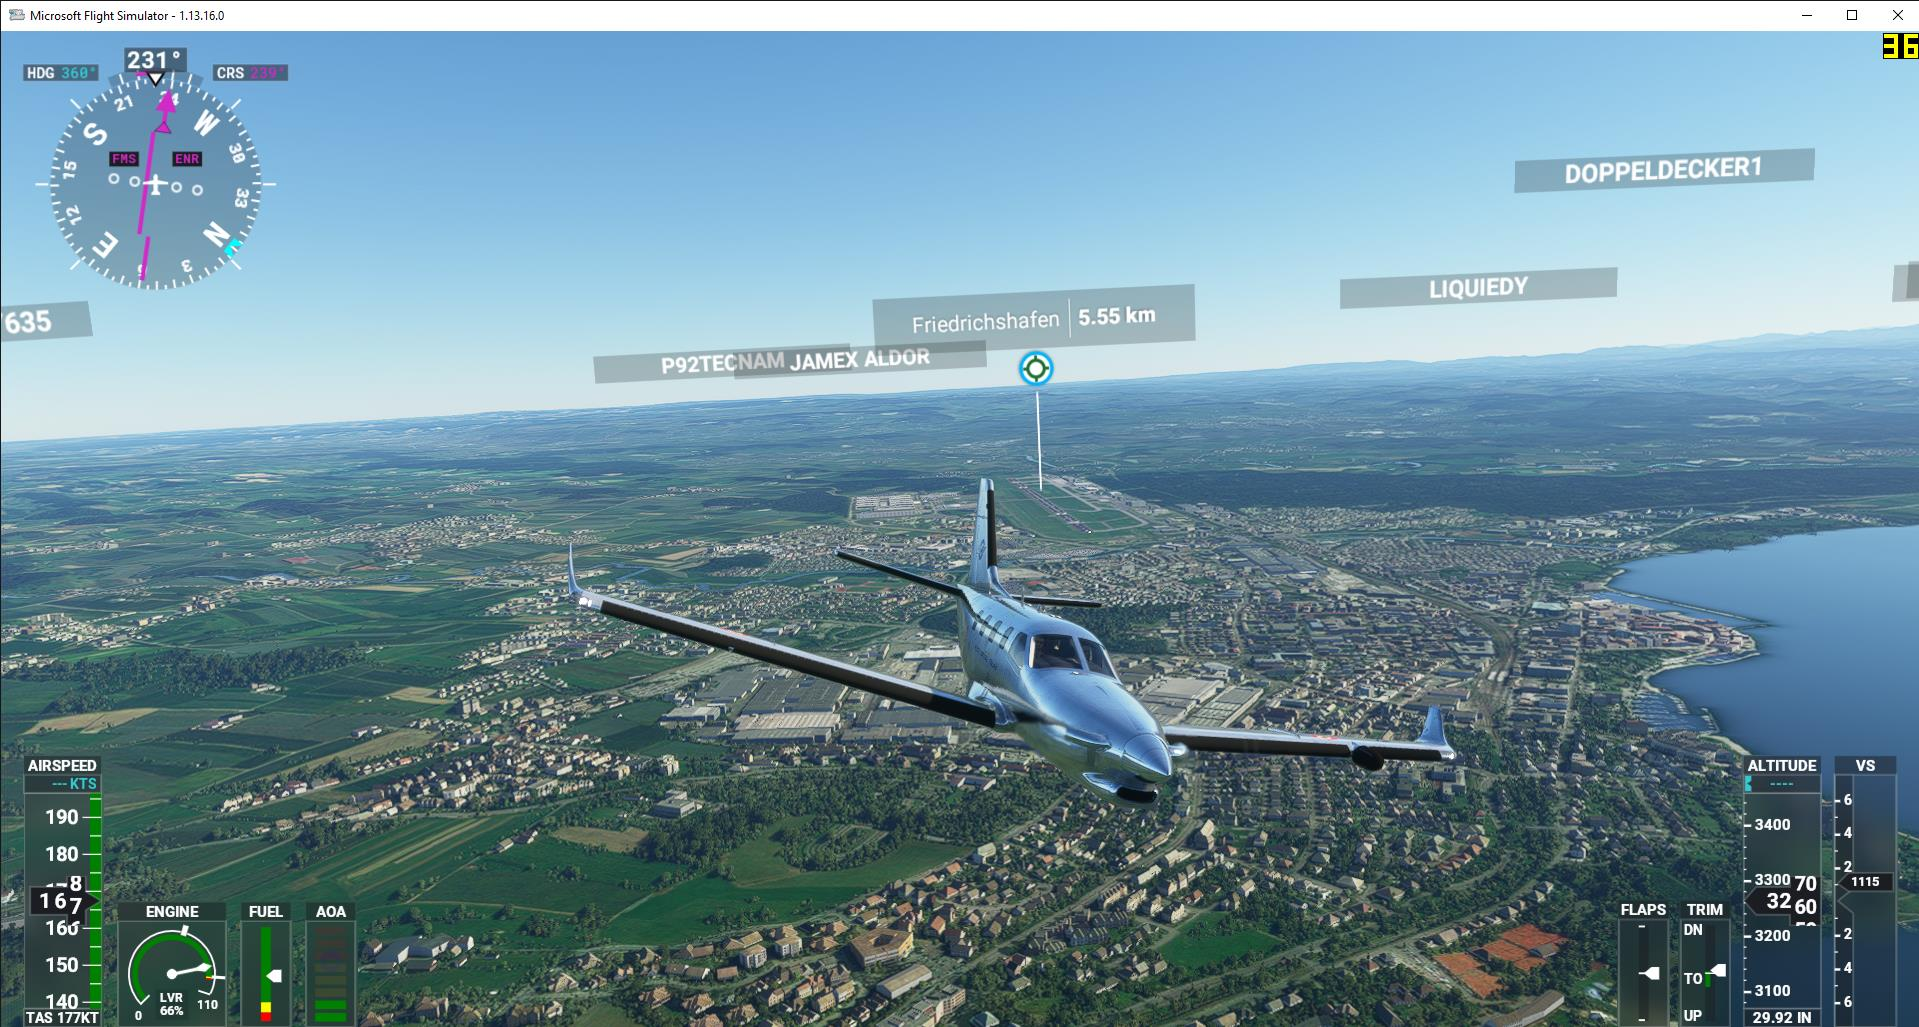 https://vivendobyte.blob.core.windows.net/58401/Microsoft Flight Simulator 23_02_2021 12_44_42.jpg